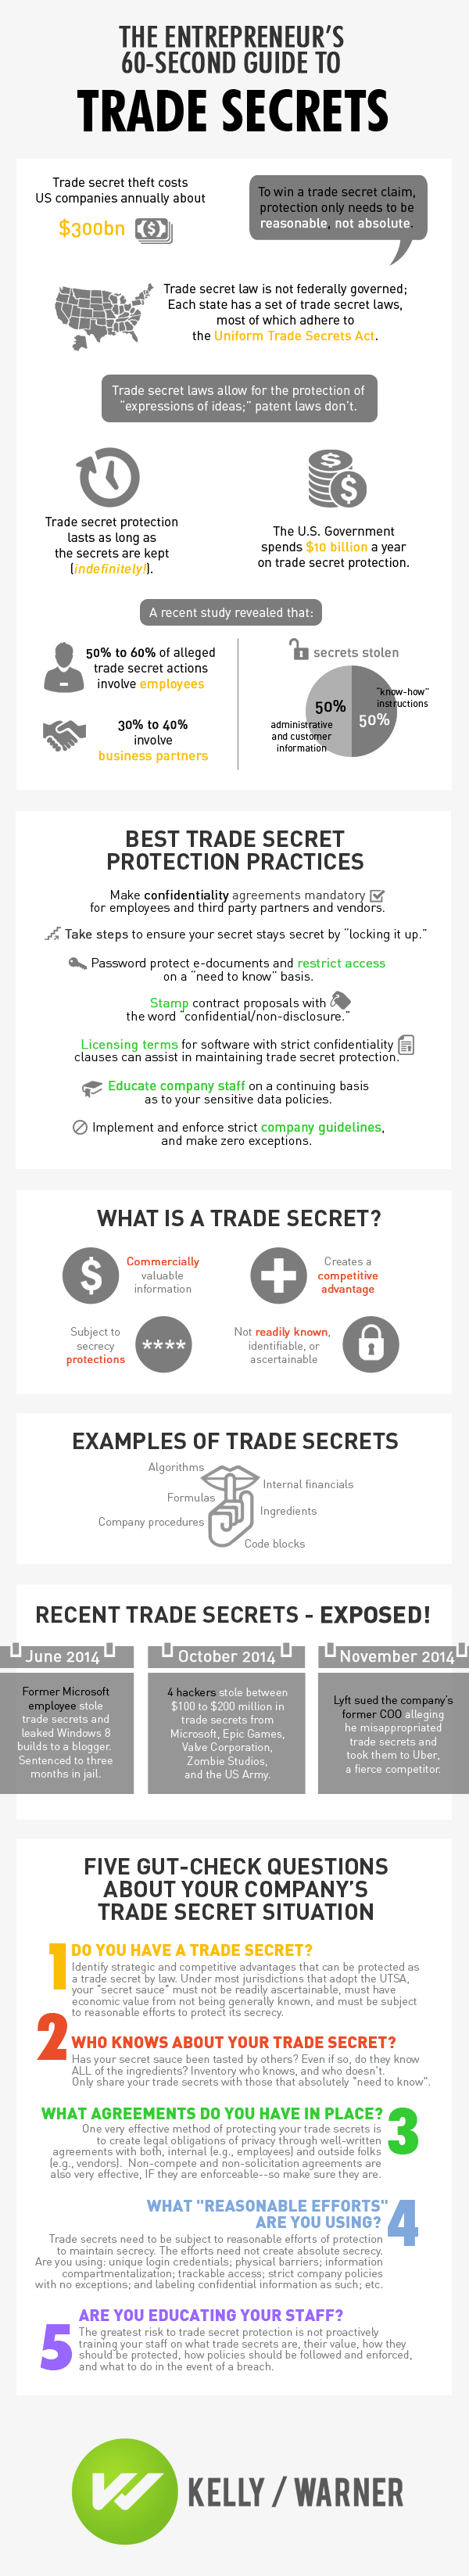 Photo of The Entrepreneur's 60-Second Guide to Trade Secrets [INFOGRAPHIC]